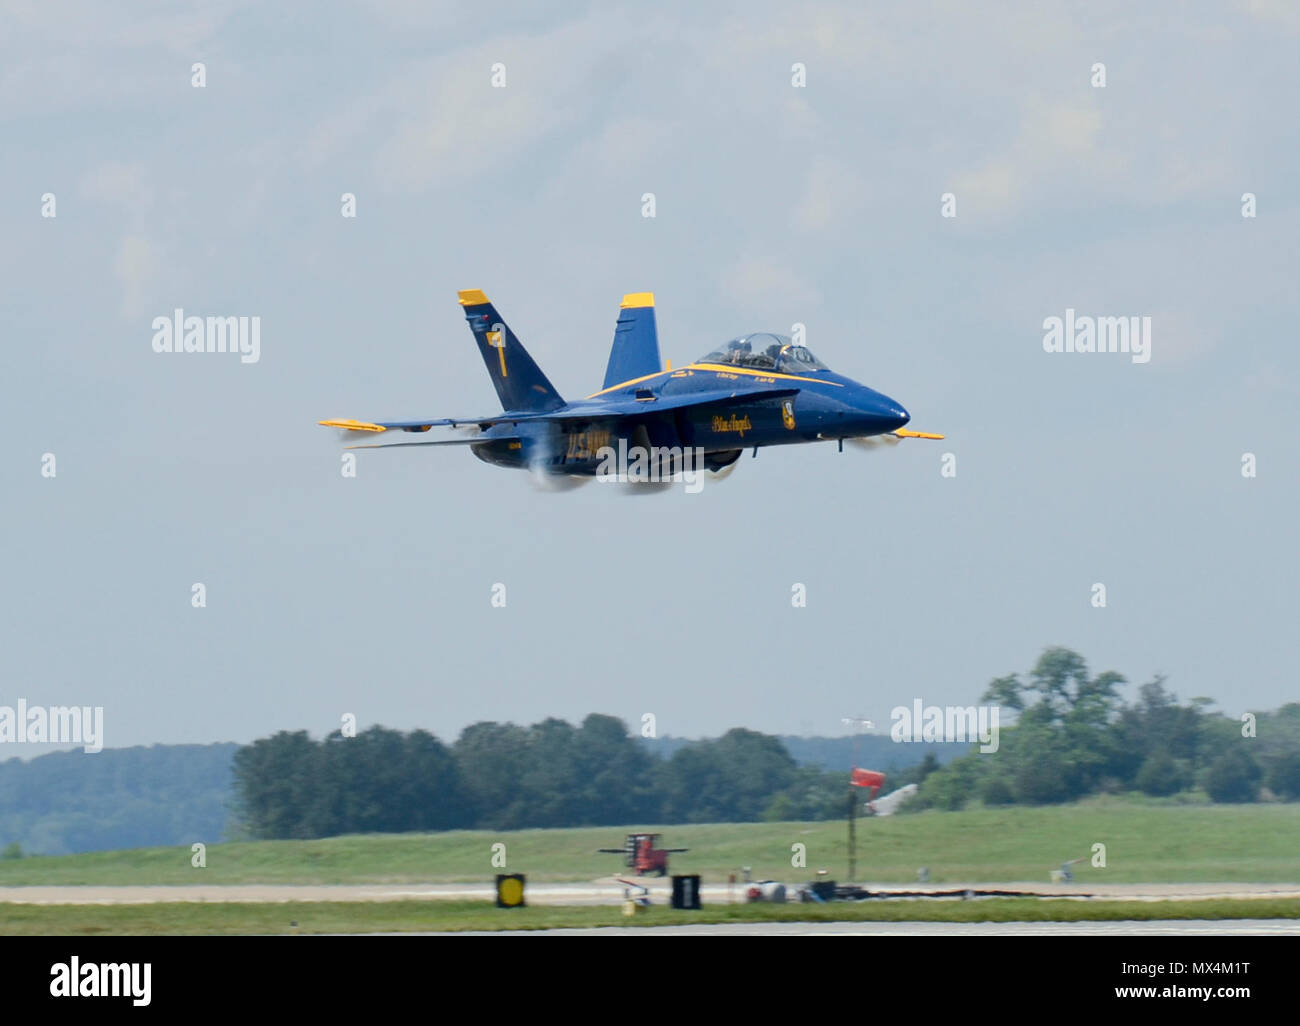 Pax River Maryland >> 180601 N Xp344 0615 Naval Air Station Patuxent River Md June 1